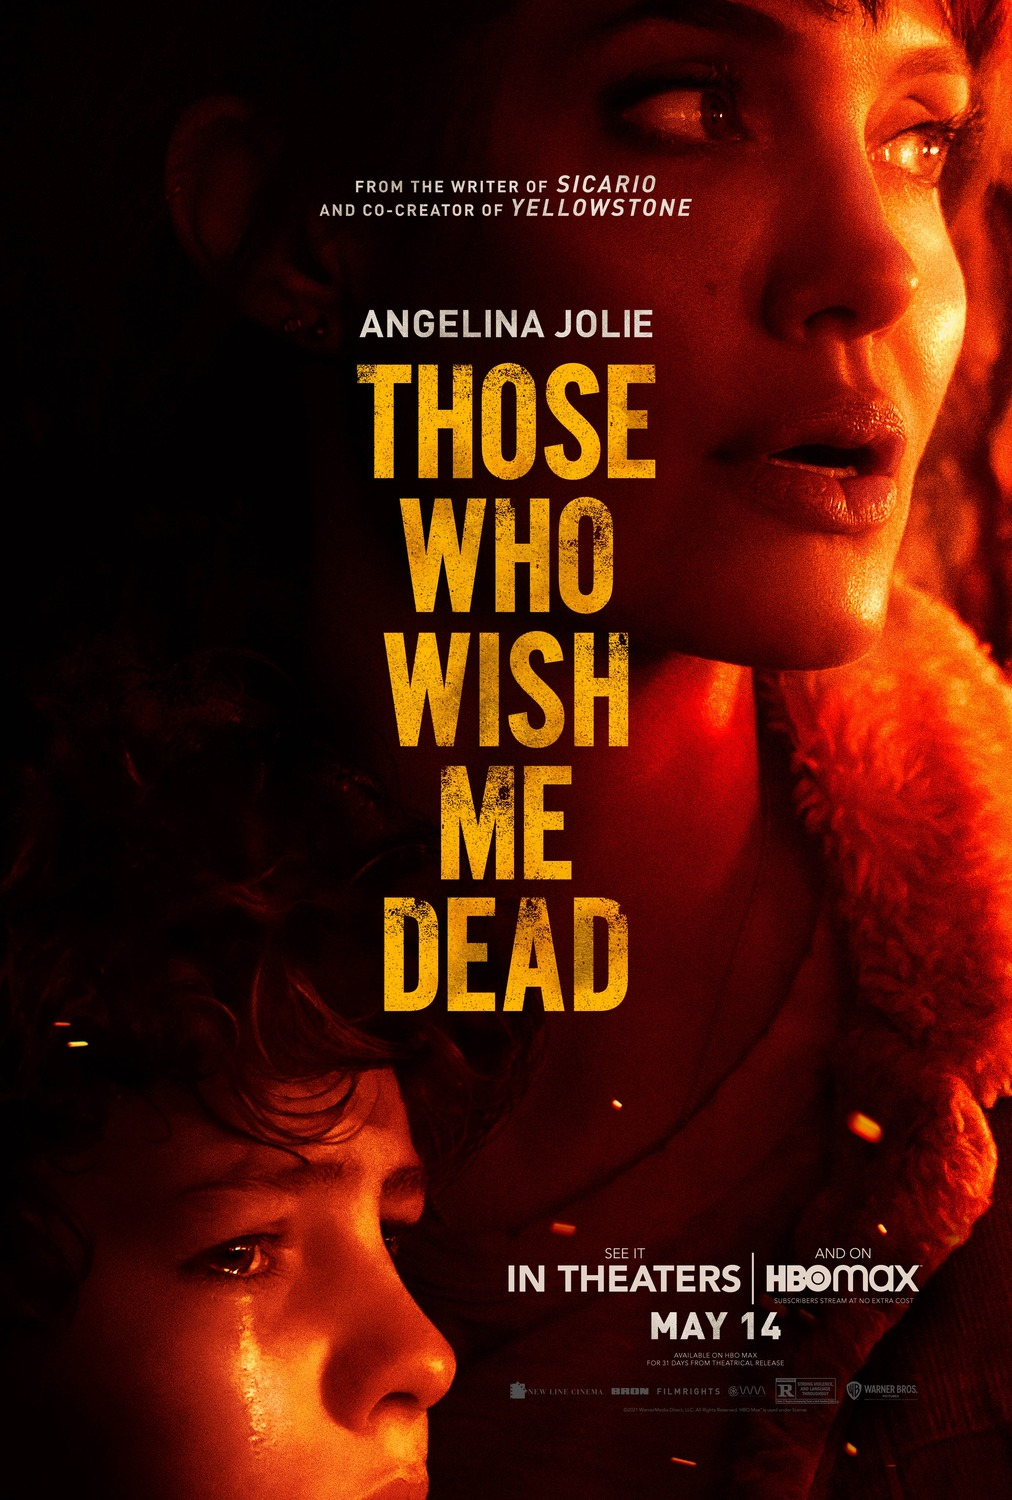 Angelina Jolie in Those Who Wish Me Dead (2021)